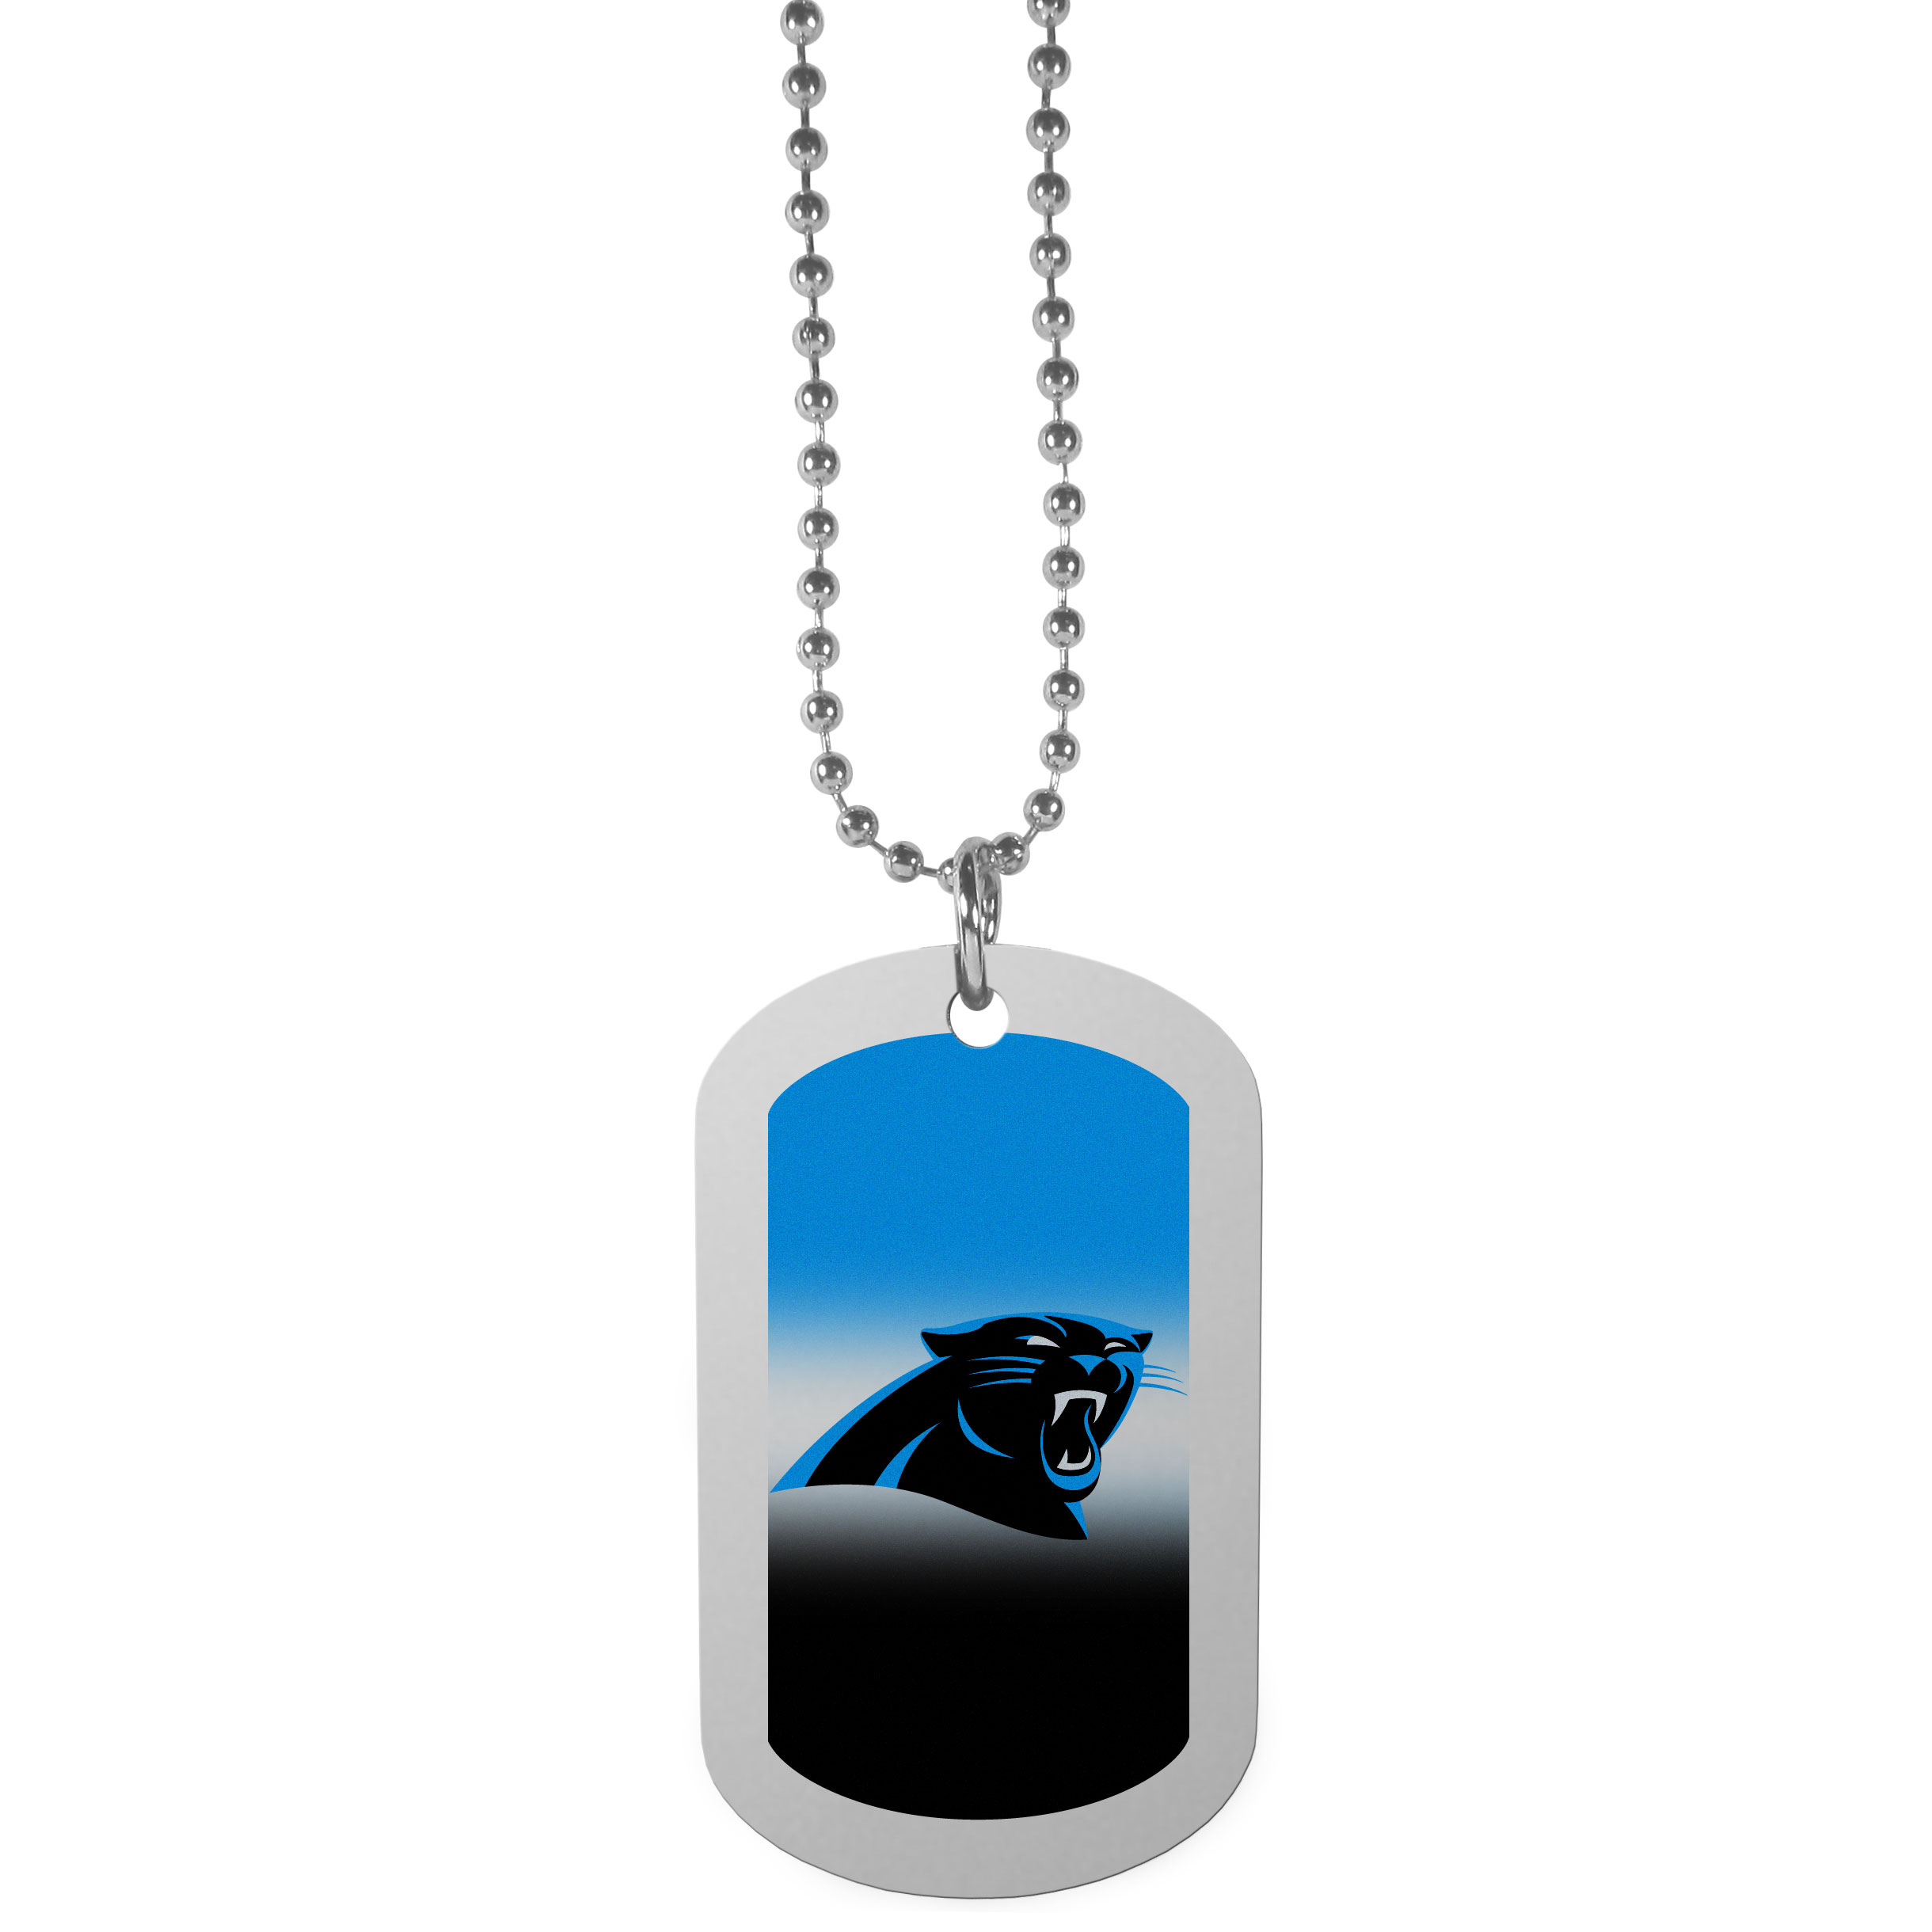 Carolina Panthers Team Tag Necklace - Dog tag necklaces are a fashion statement that is here to stay. The sporty version of the classic tag features a gradient print in team colors featuring a full color team logo over a high polish tag to create a bold and sporty look. The tag comes on a 26 inch ball chain with a ball and joint clasp. Any Carolina Panthers would be proud to wear this attractive fashion accessory.